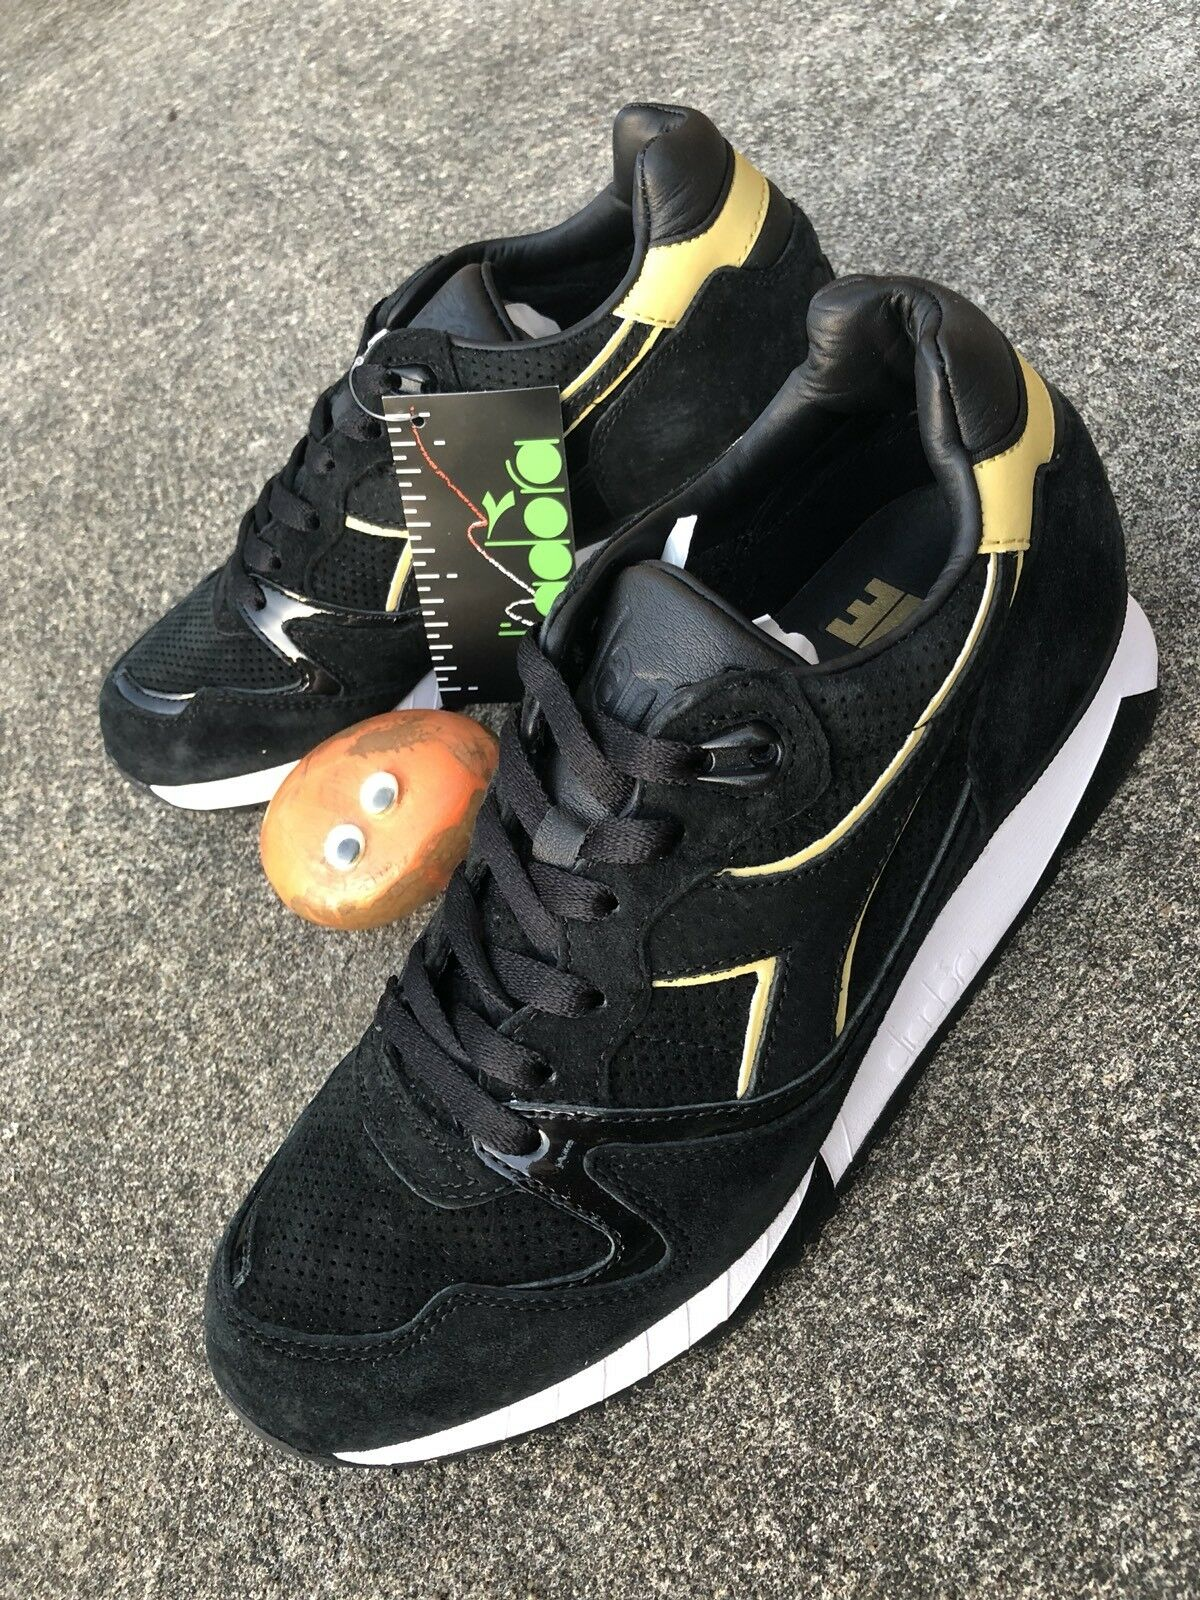 Diadora V7000 tutti Gone 2006 Nero UK6 US6.5 EU39 JP24.5 JP24.5 JP24.5 74ae86